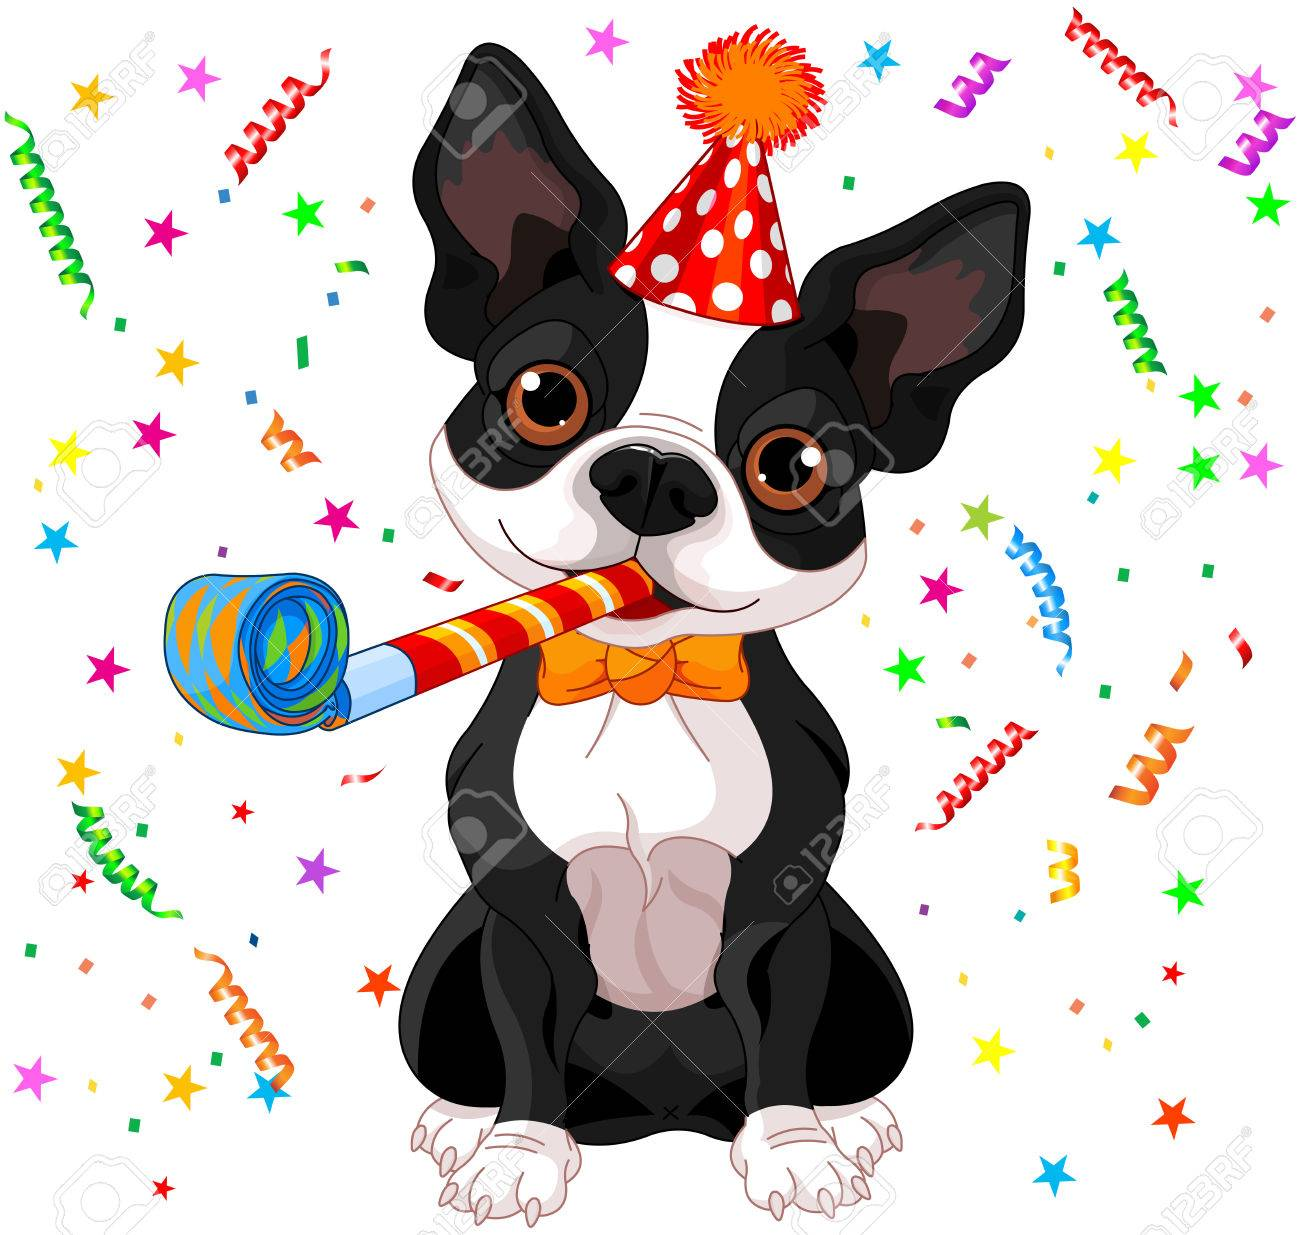 Tony Knight Dog Listener (Cahors 26/11/2011) - Page 2 35588778-illustration-of-cute-boston-terrier-celebrating